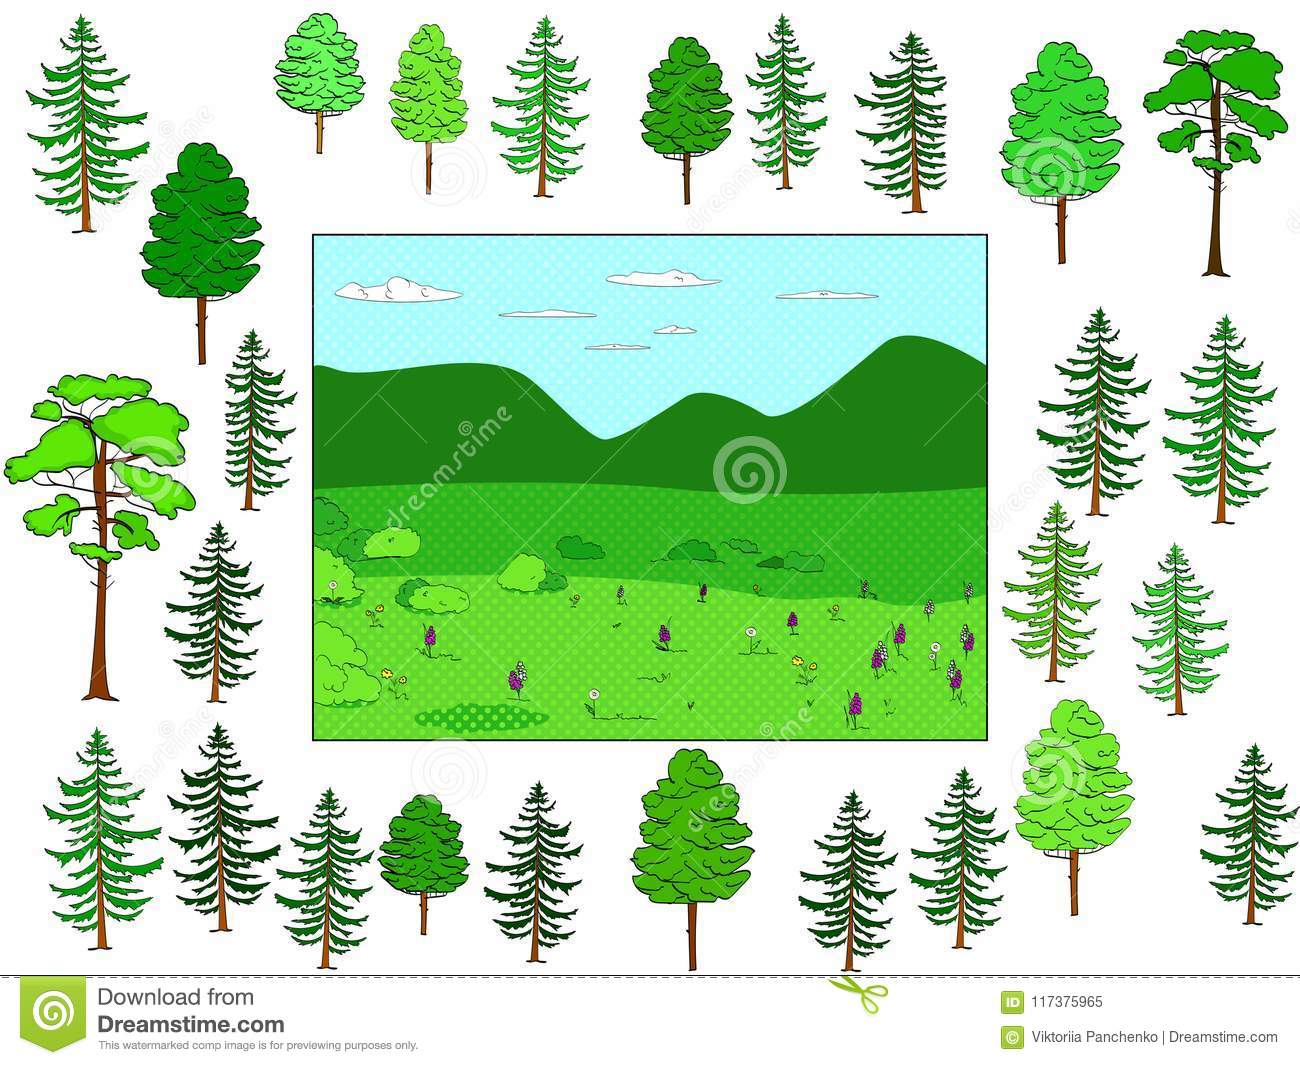 Developing children game, cut and put in place. Background of natural forest and glade, objects of trees. Vector